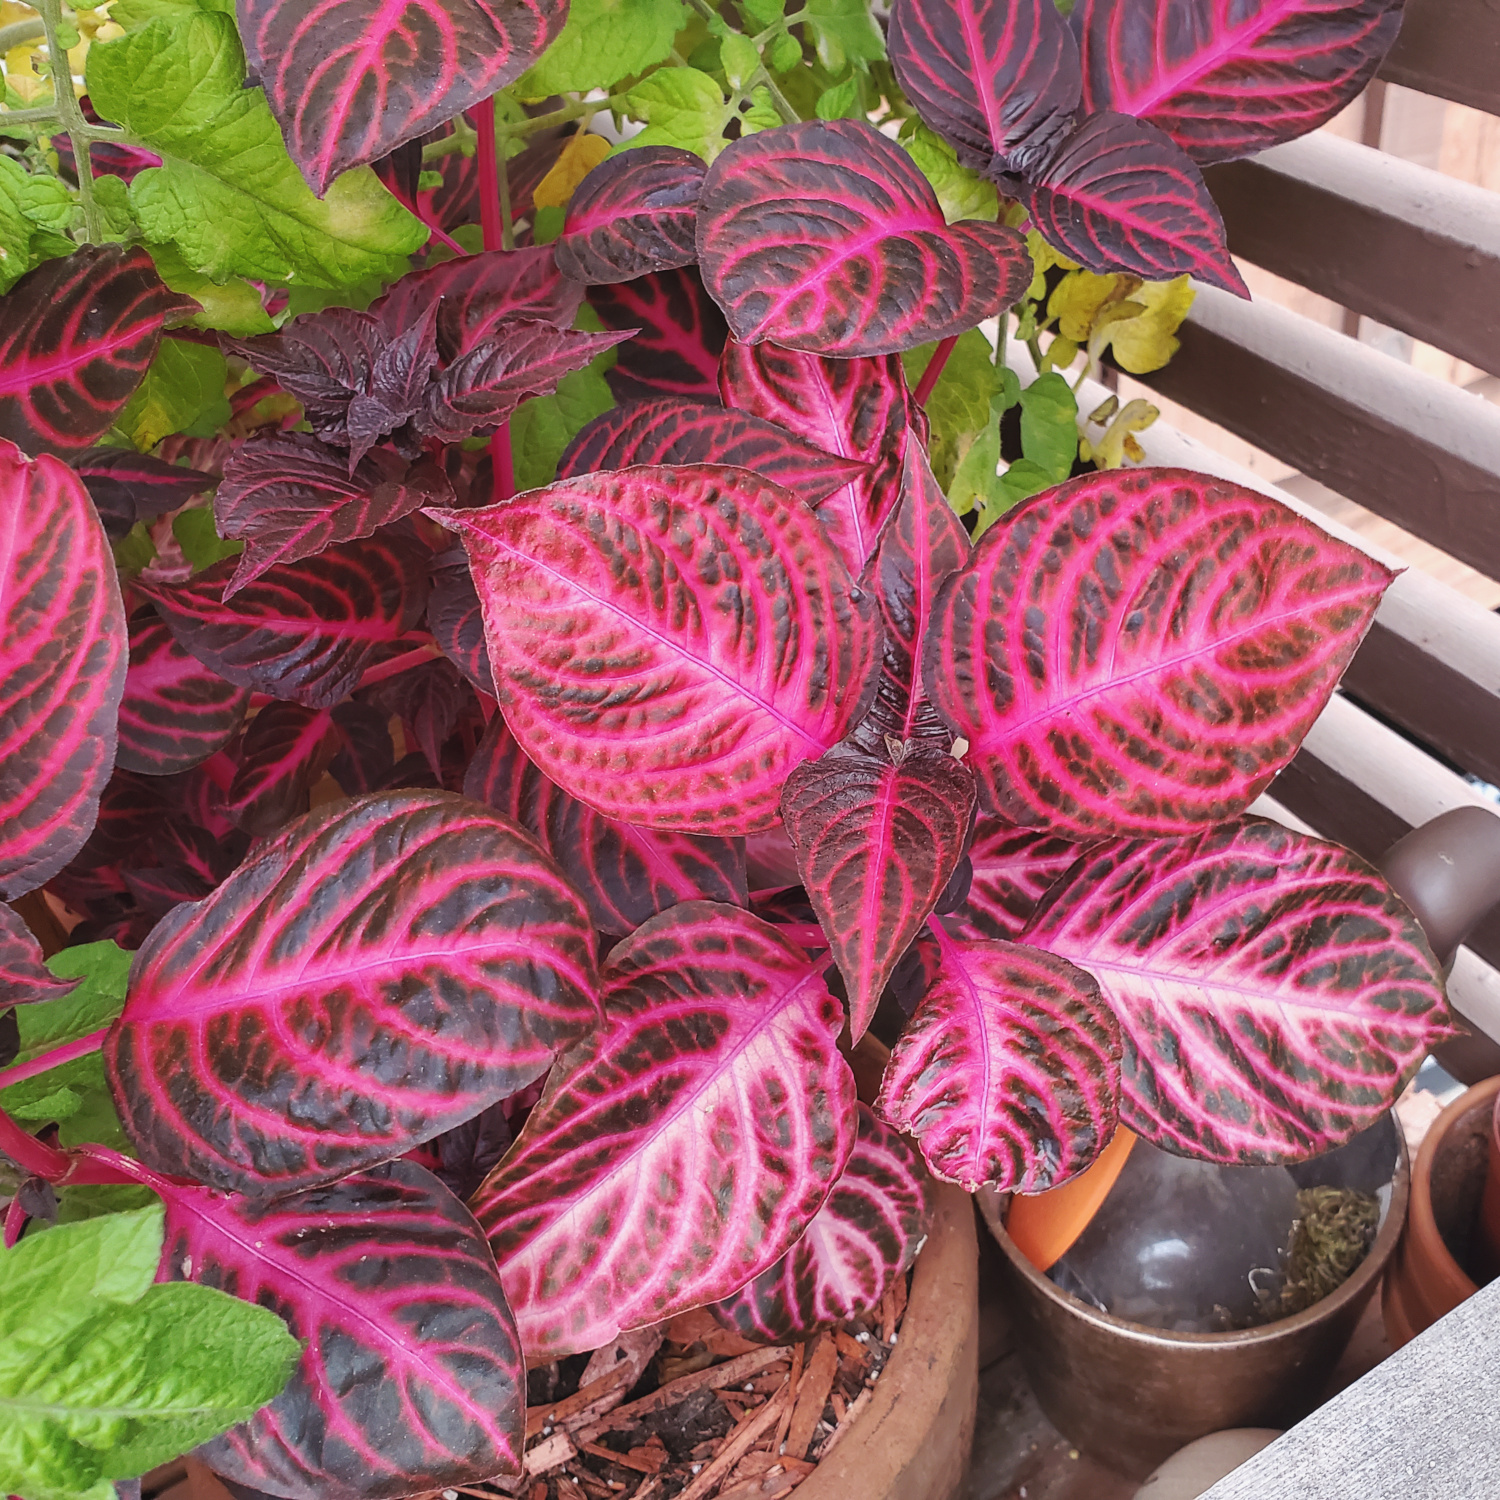 The lively bloodleaf is showing off its colors